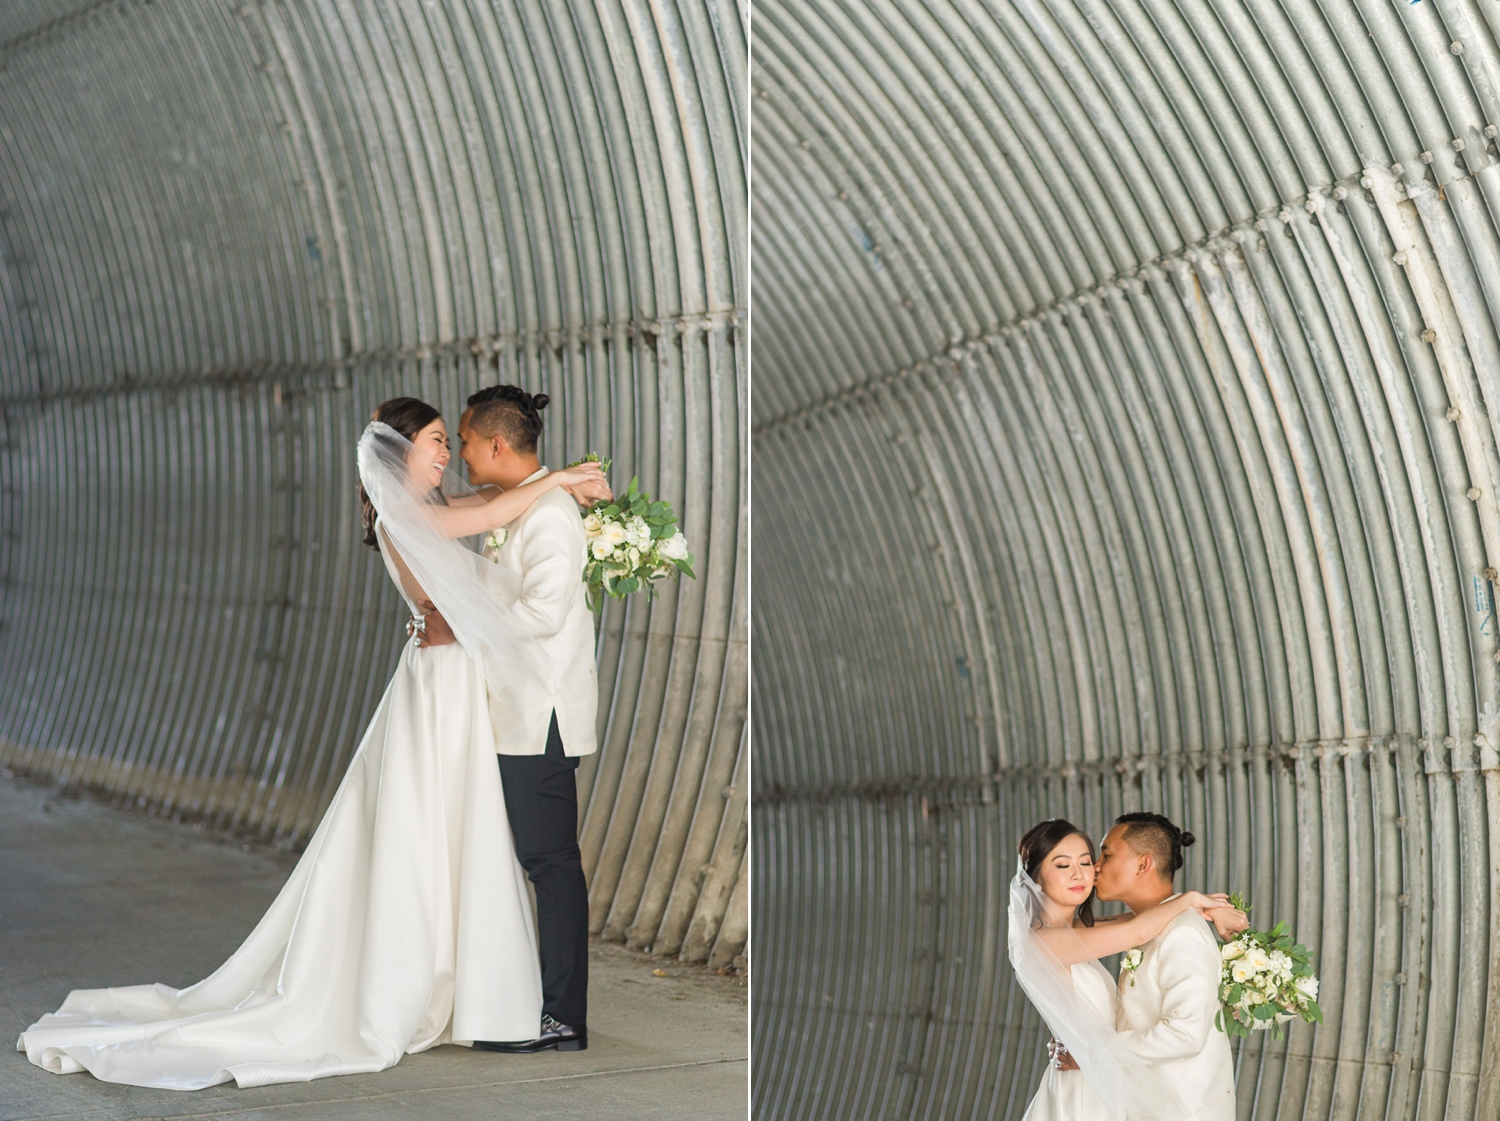 Bride and groom laughing in a tunnel